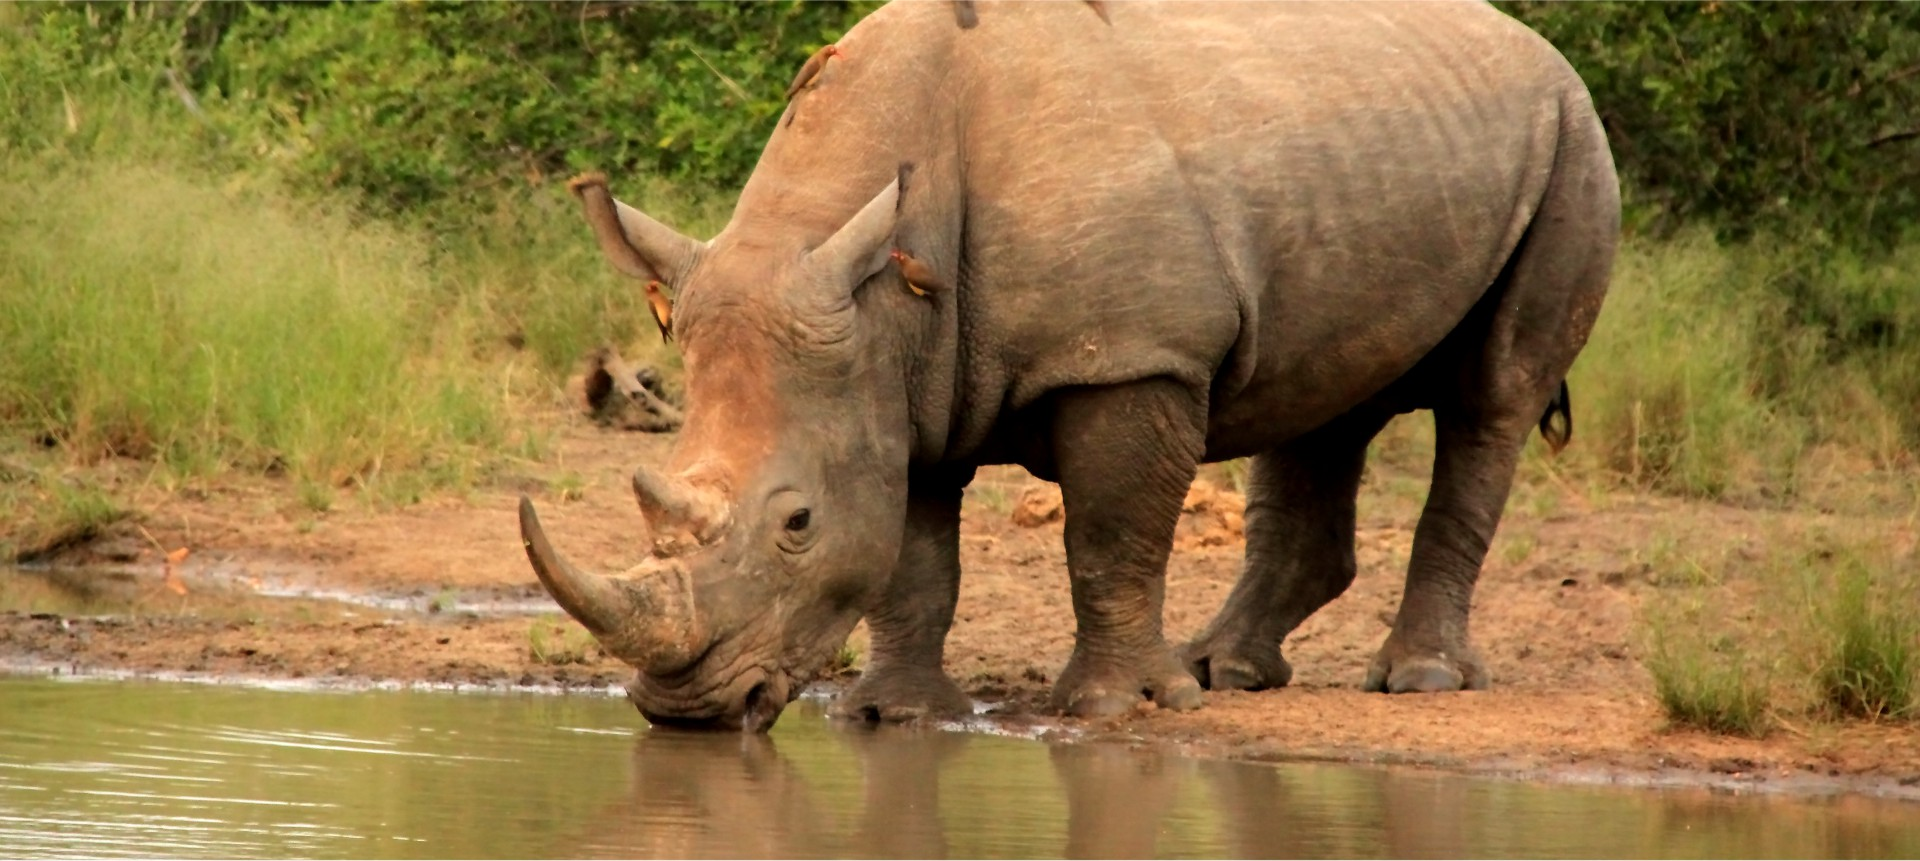 Safaria – Rhino in Kruger National Park